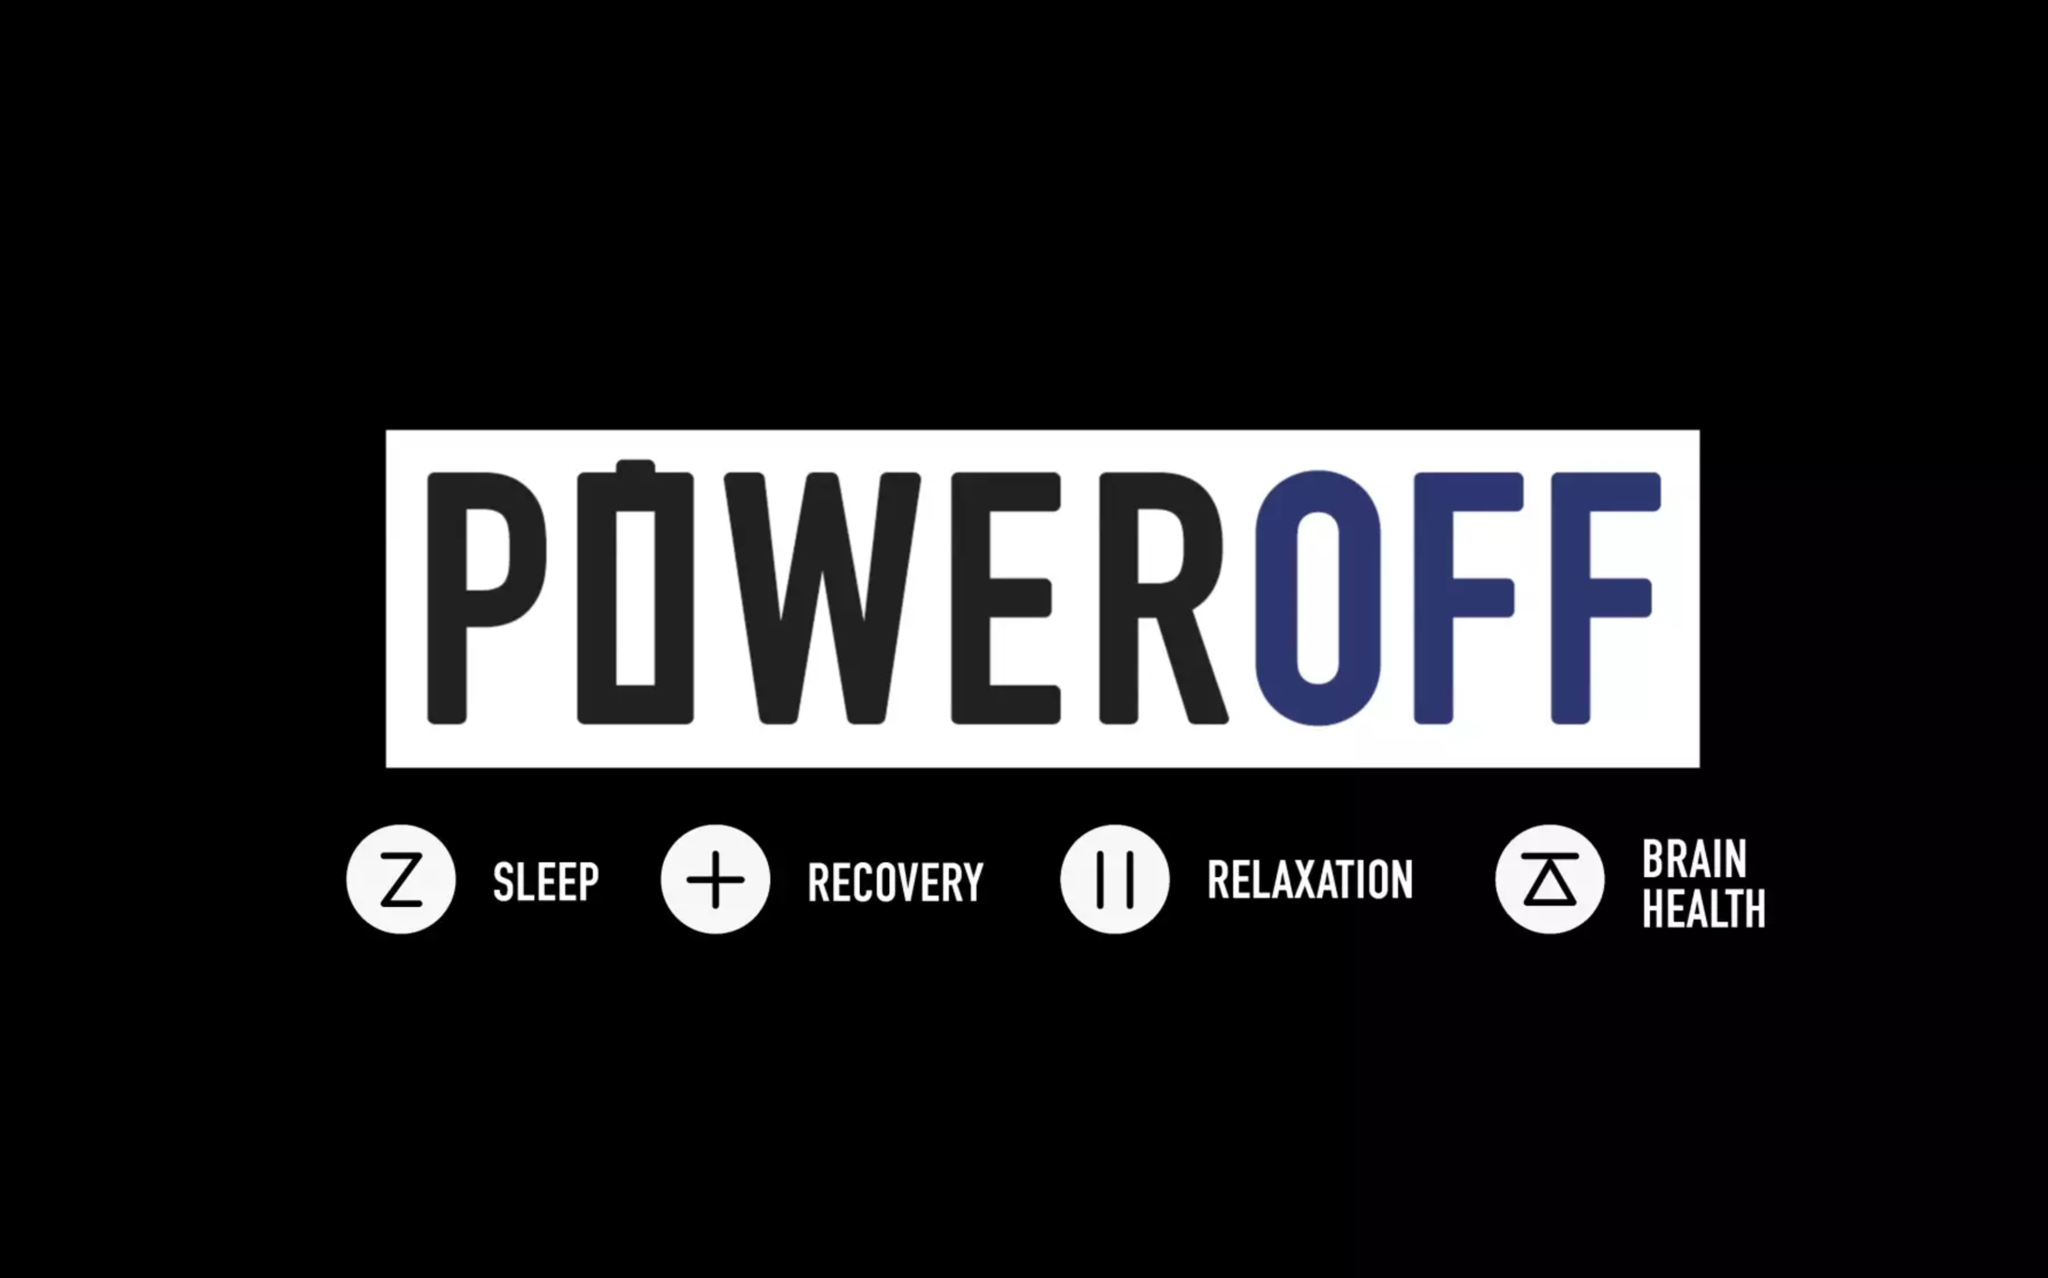 Power Off: Enhance Sleep Quality